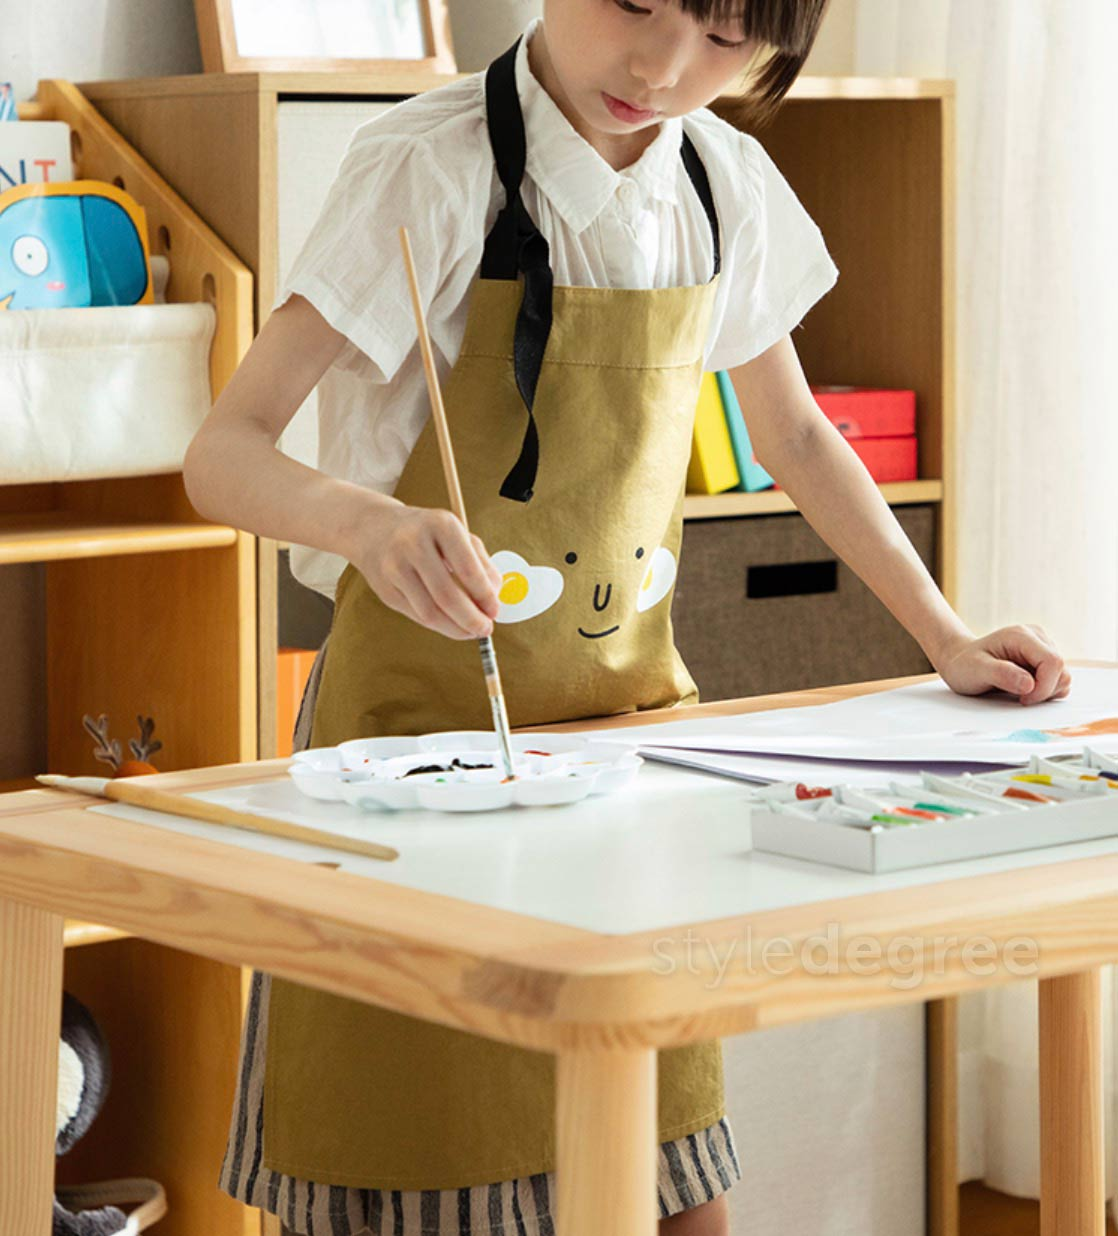 Family Kids Kitchen Apron Cook With Children Style Degree